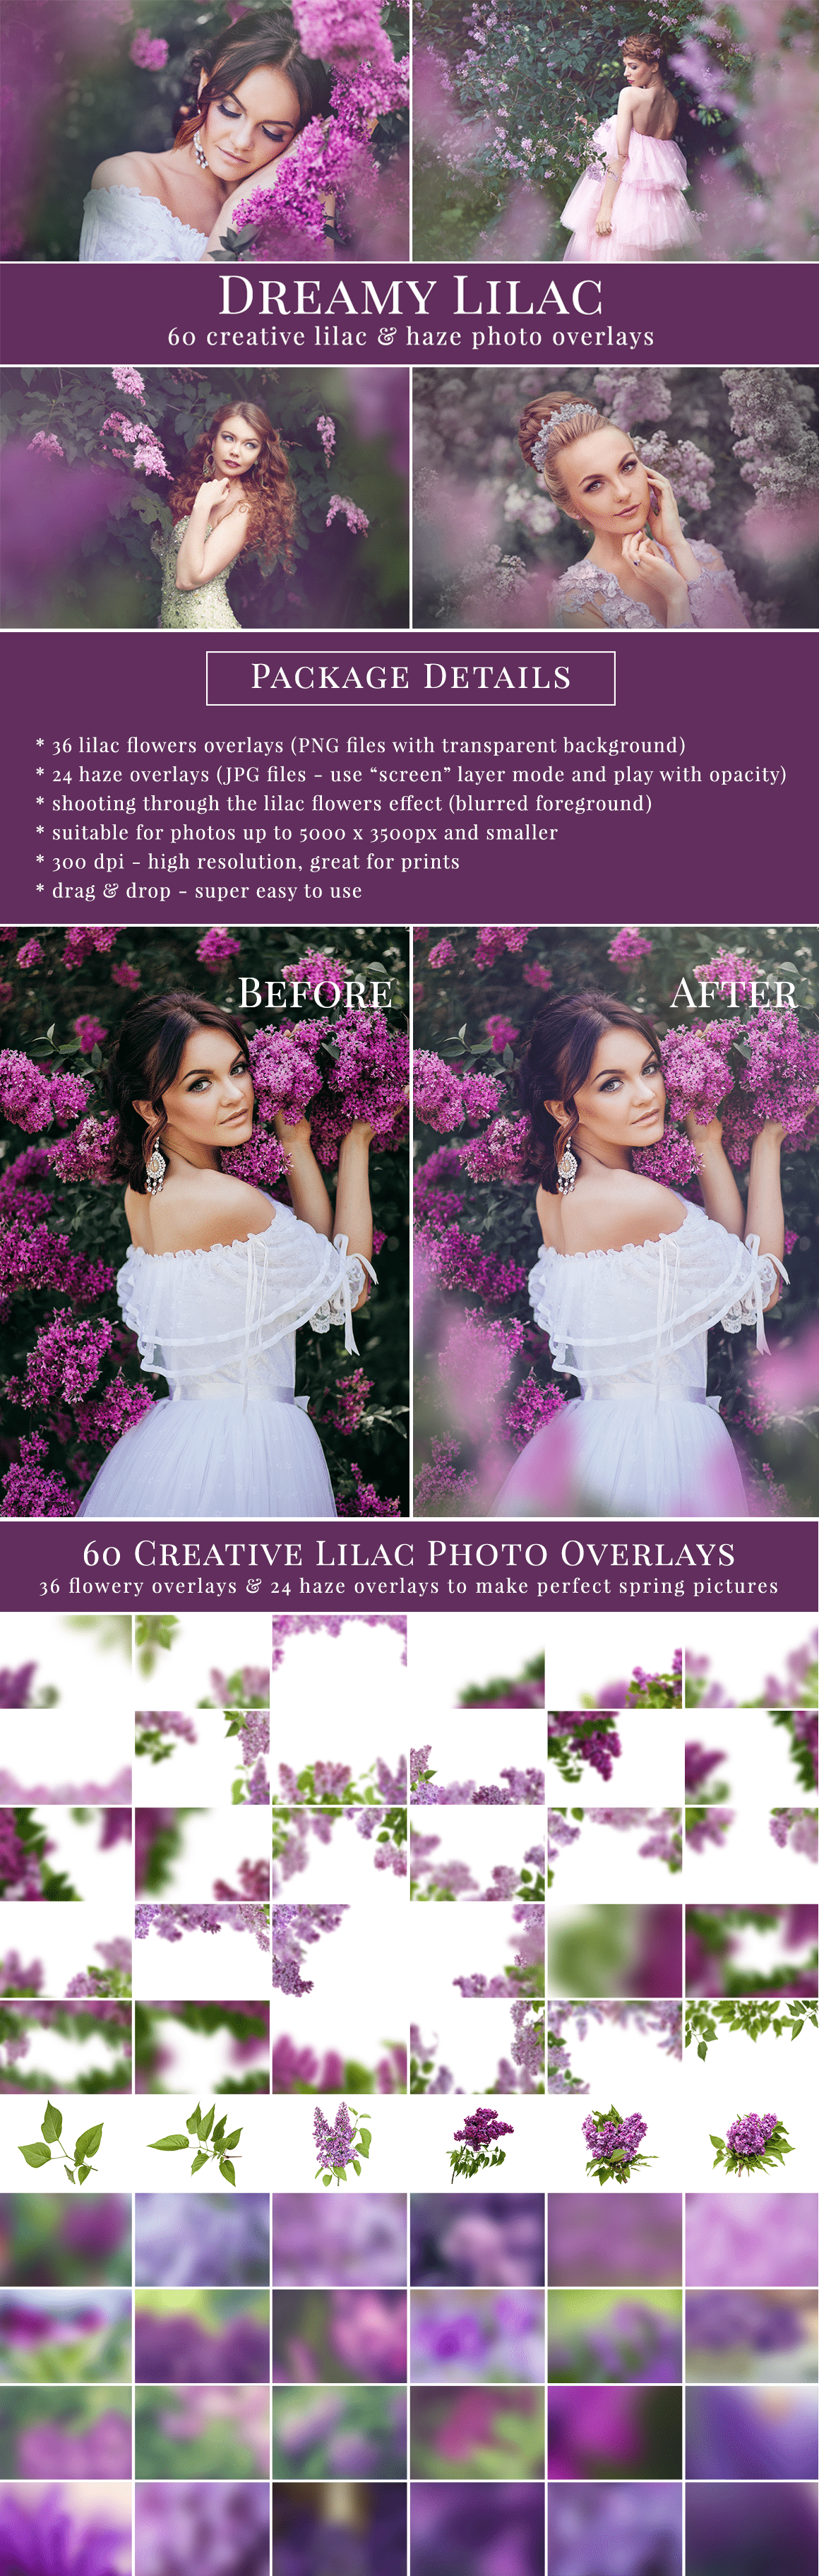 Creative Lilac photo overlays & Haze photo overlays - all you need to style amazing flowery scenes, great for spring mini sessions. Drag & drop - super easy to use, very pretty result just in one minute. Professional photo overlays for Photoshop, Zoner, Gimp etc. Photo overlays for creative photographers from Brown Leopard.